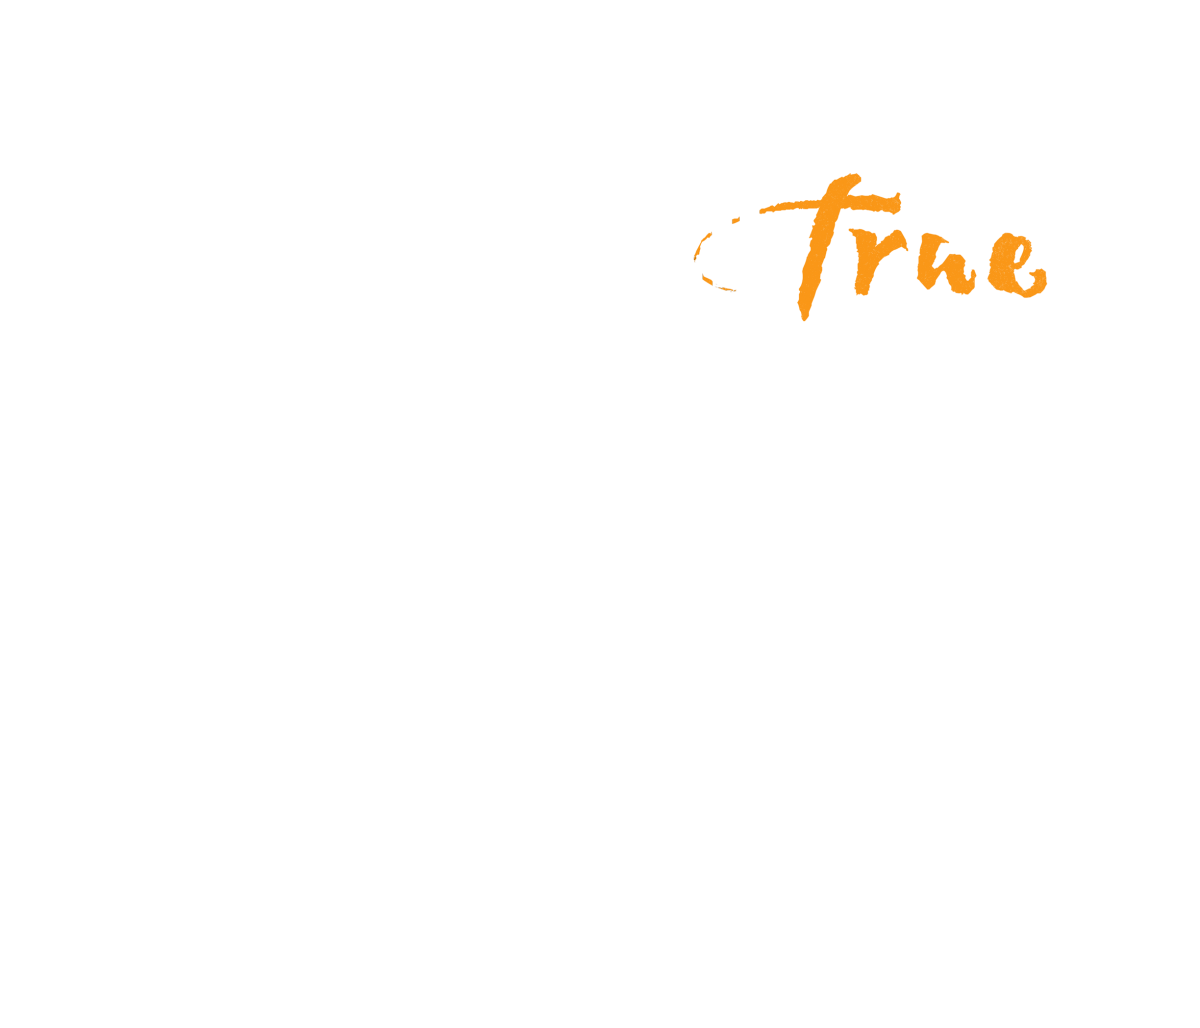 Enchanted Eight